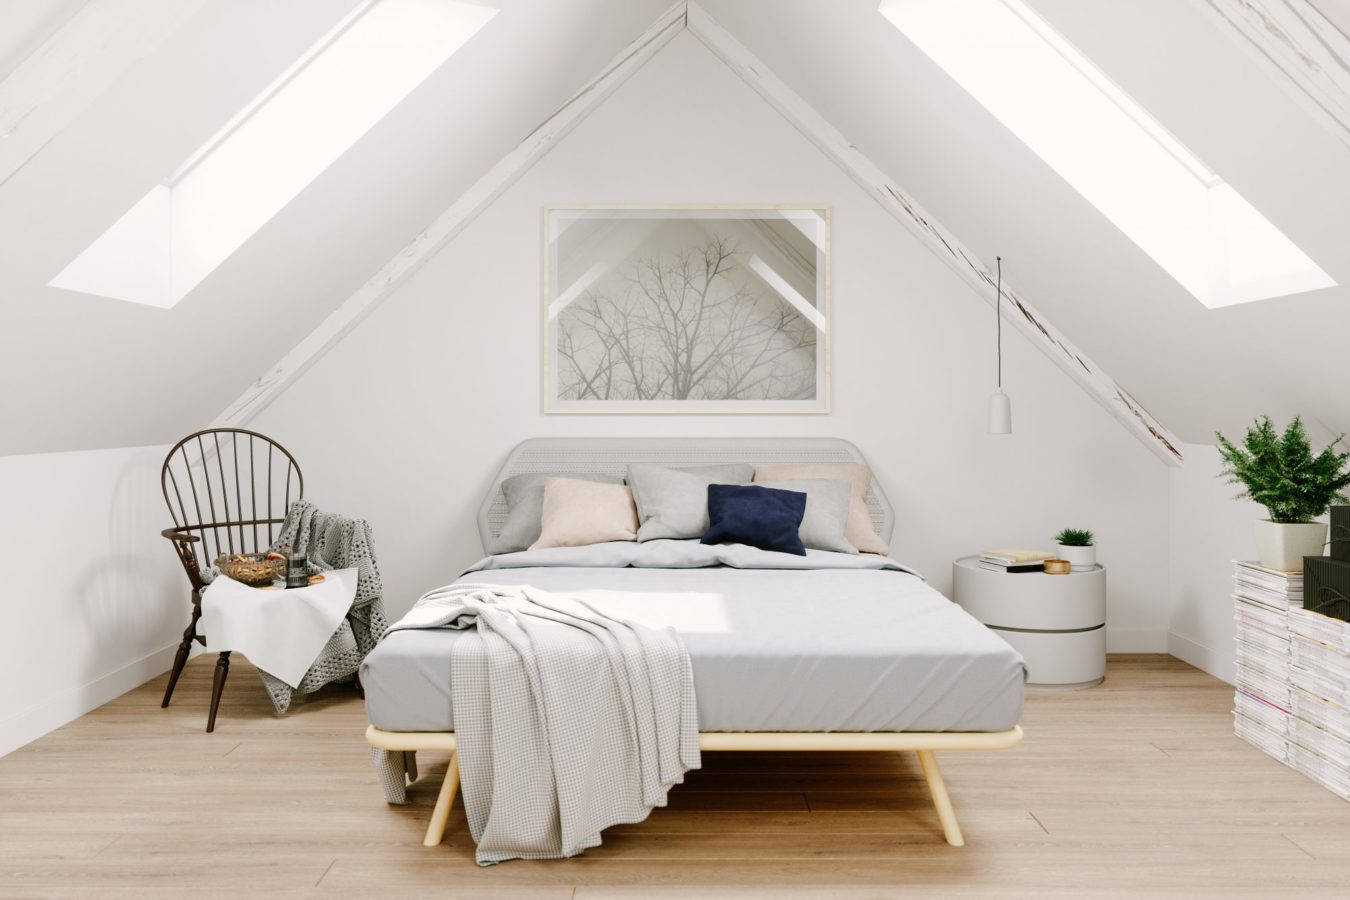 Why you should consider buying bamboo sheets